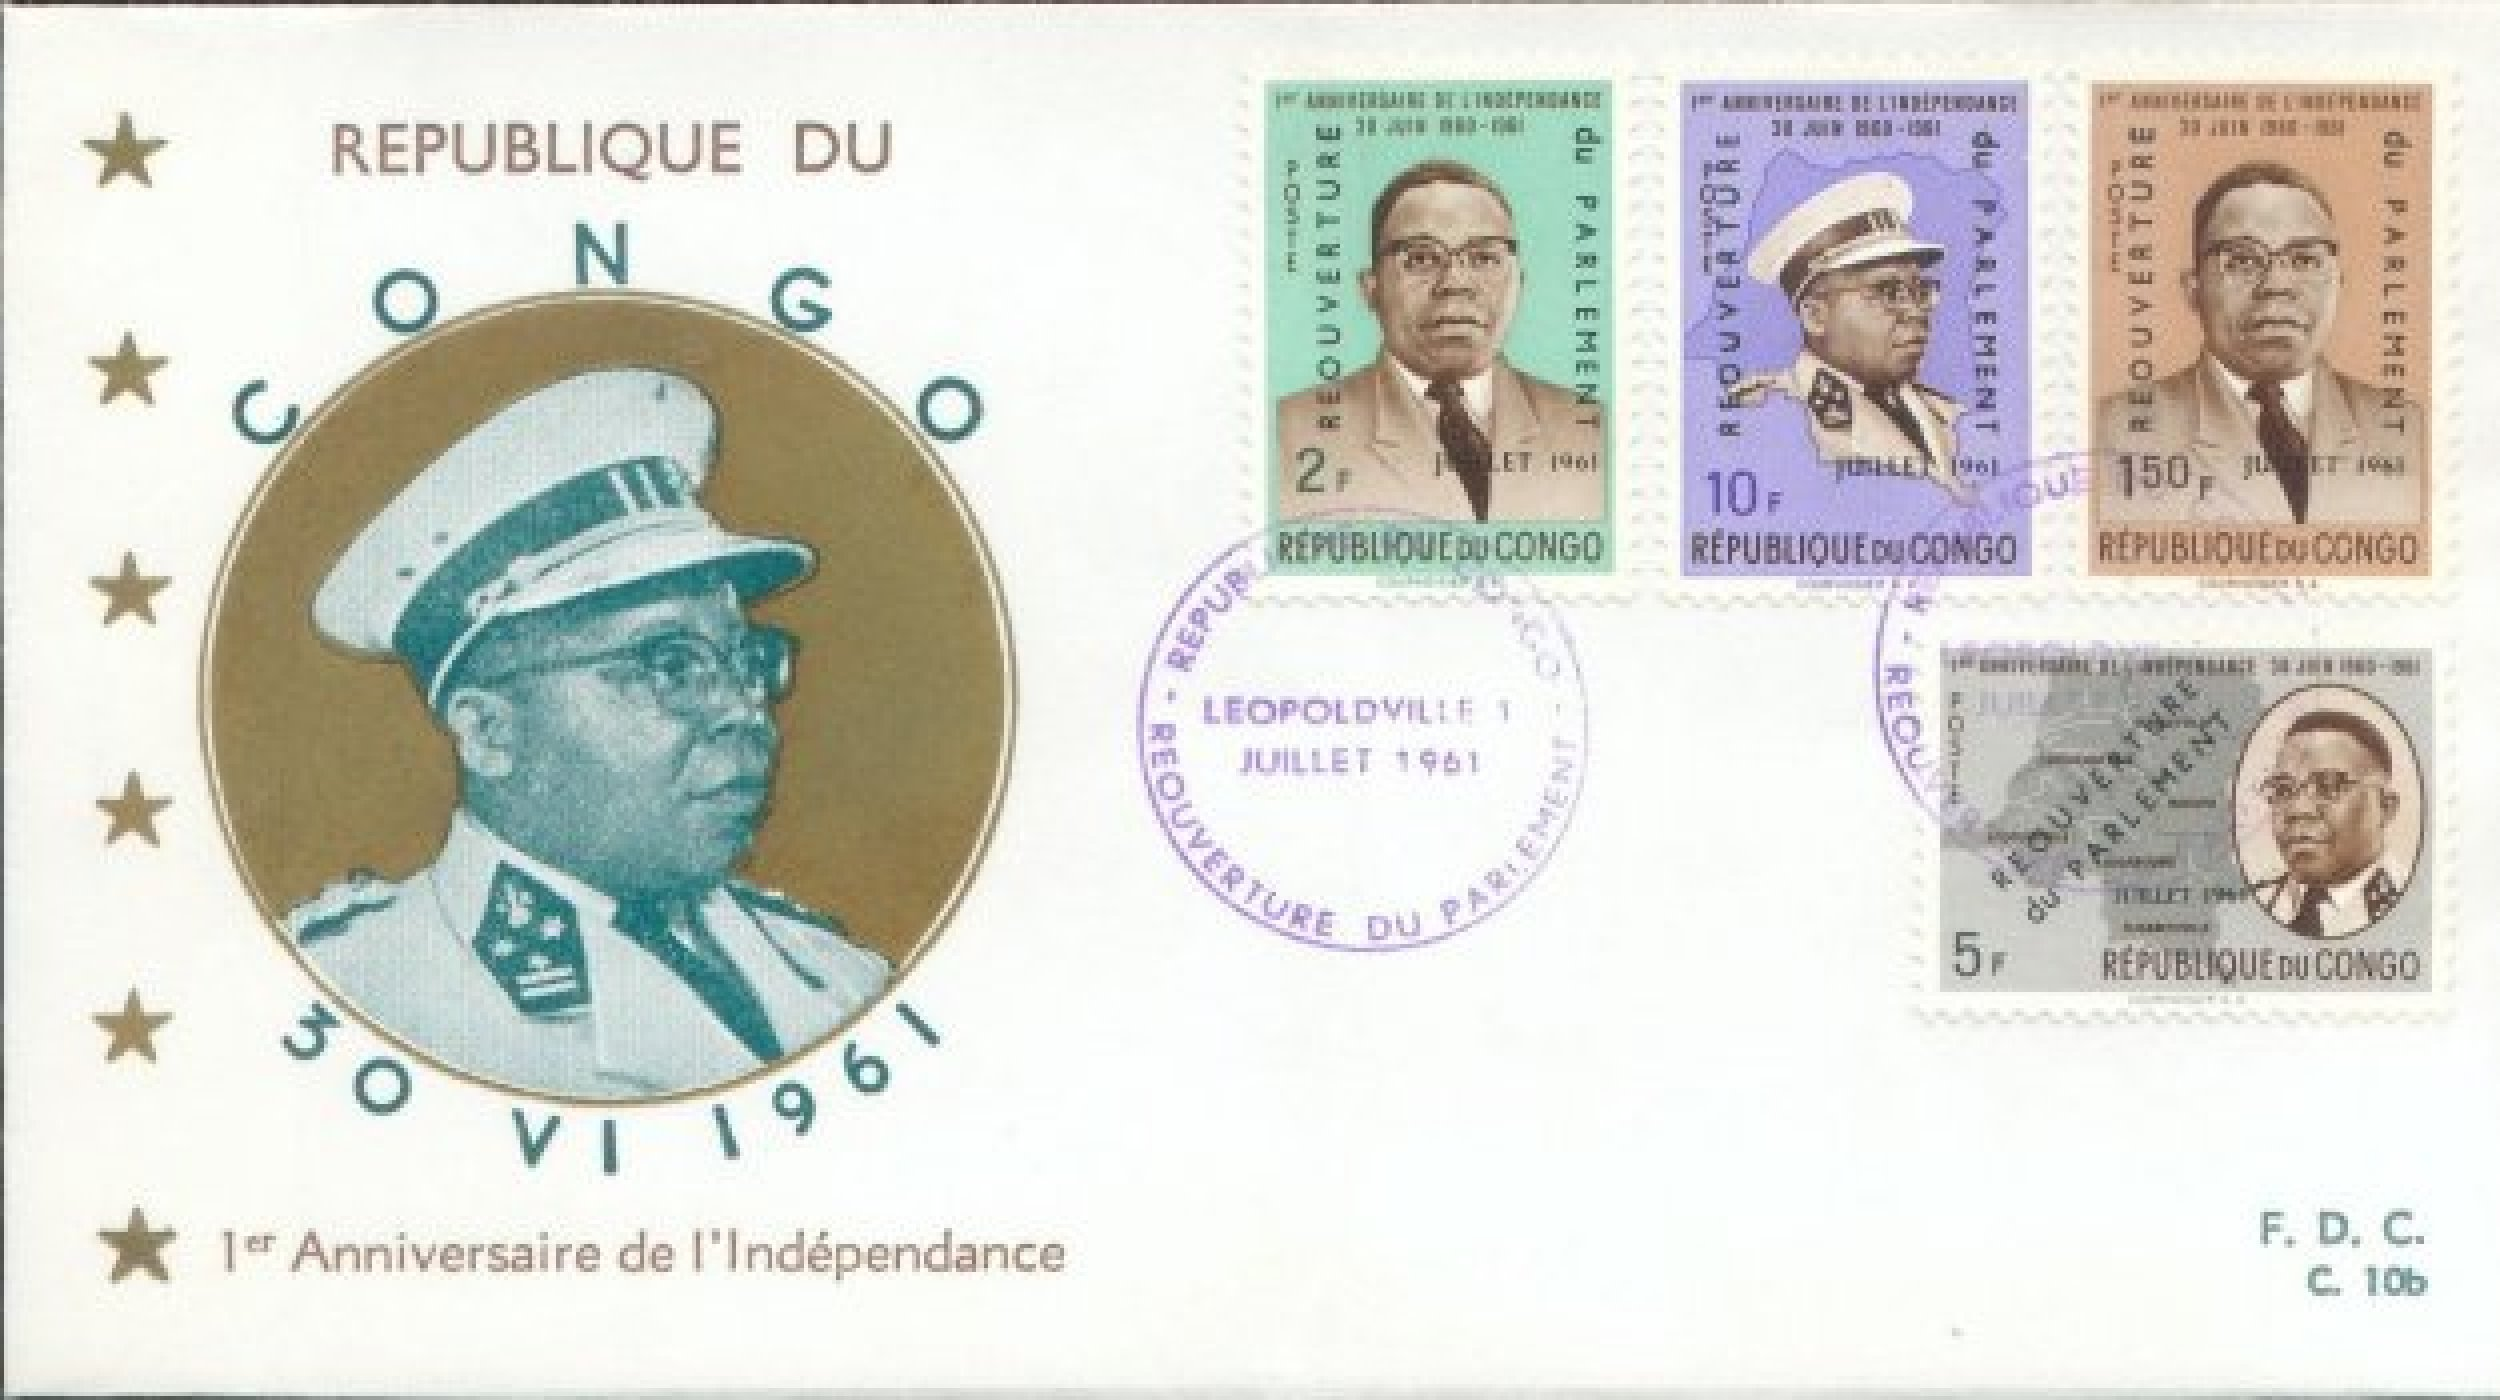 FDC C10